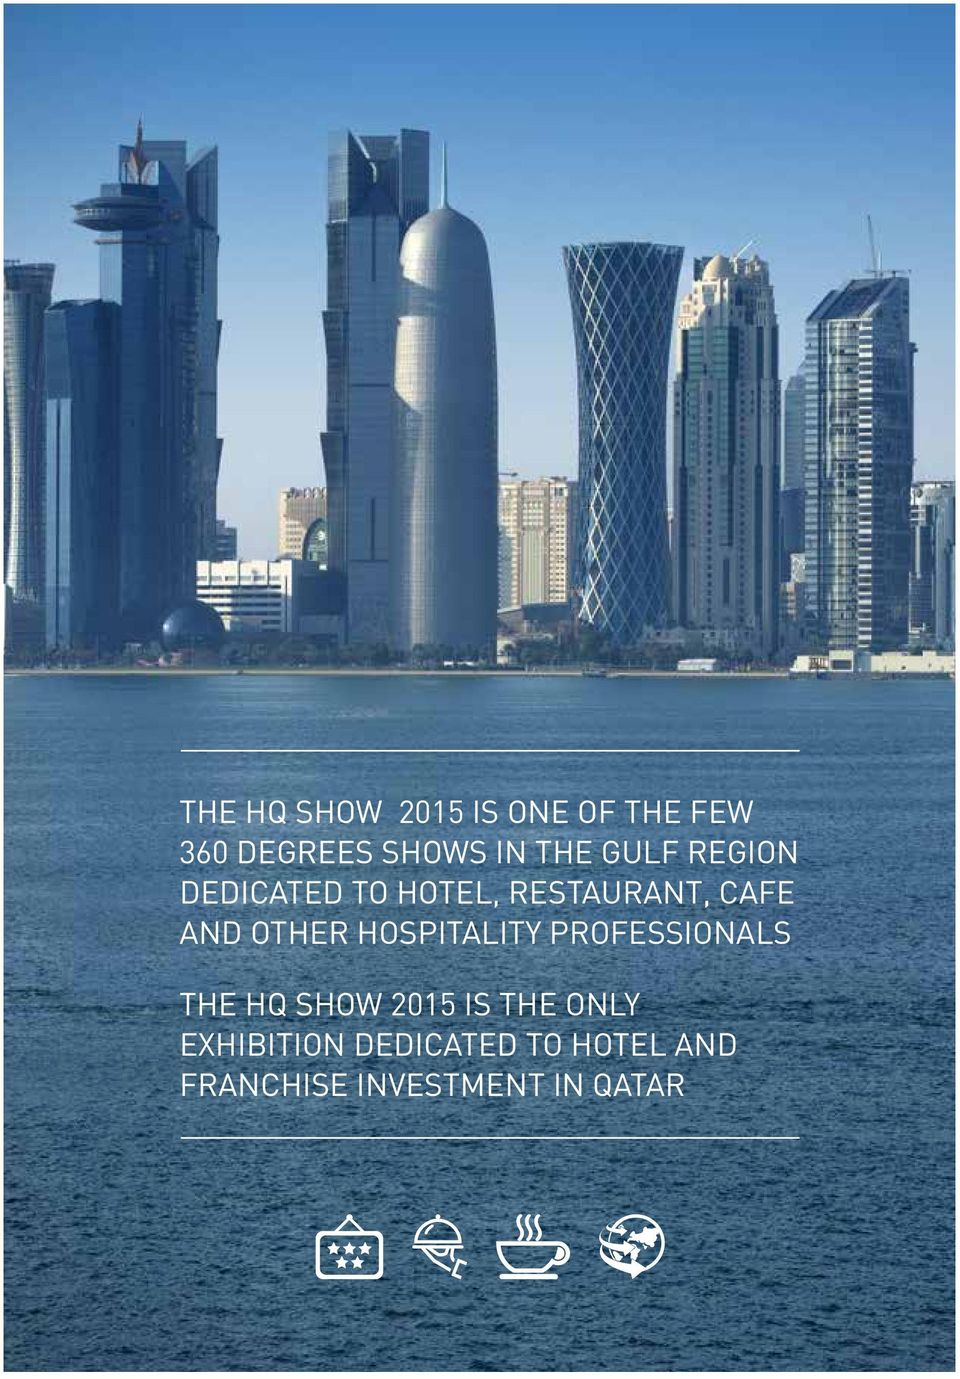 hospitality professionals The HQ Show 2015 is the only